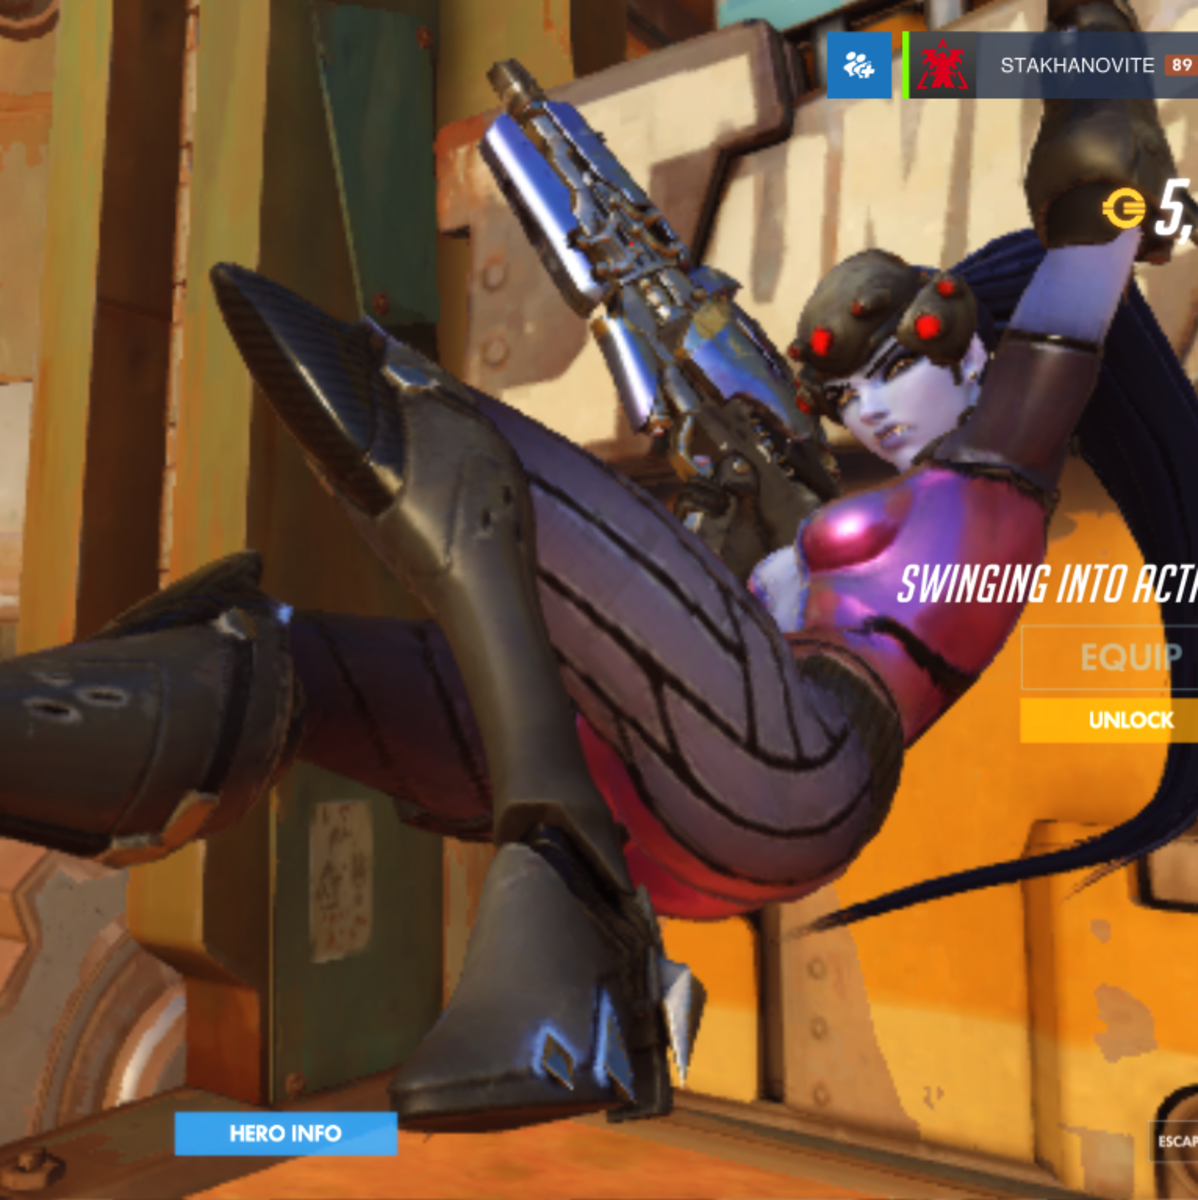 """Widowmaker, Widowmaker, making widows by killing their man."" That's dark, I'm sorry."